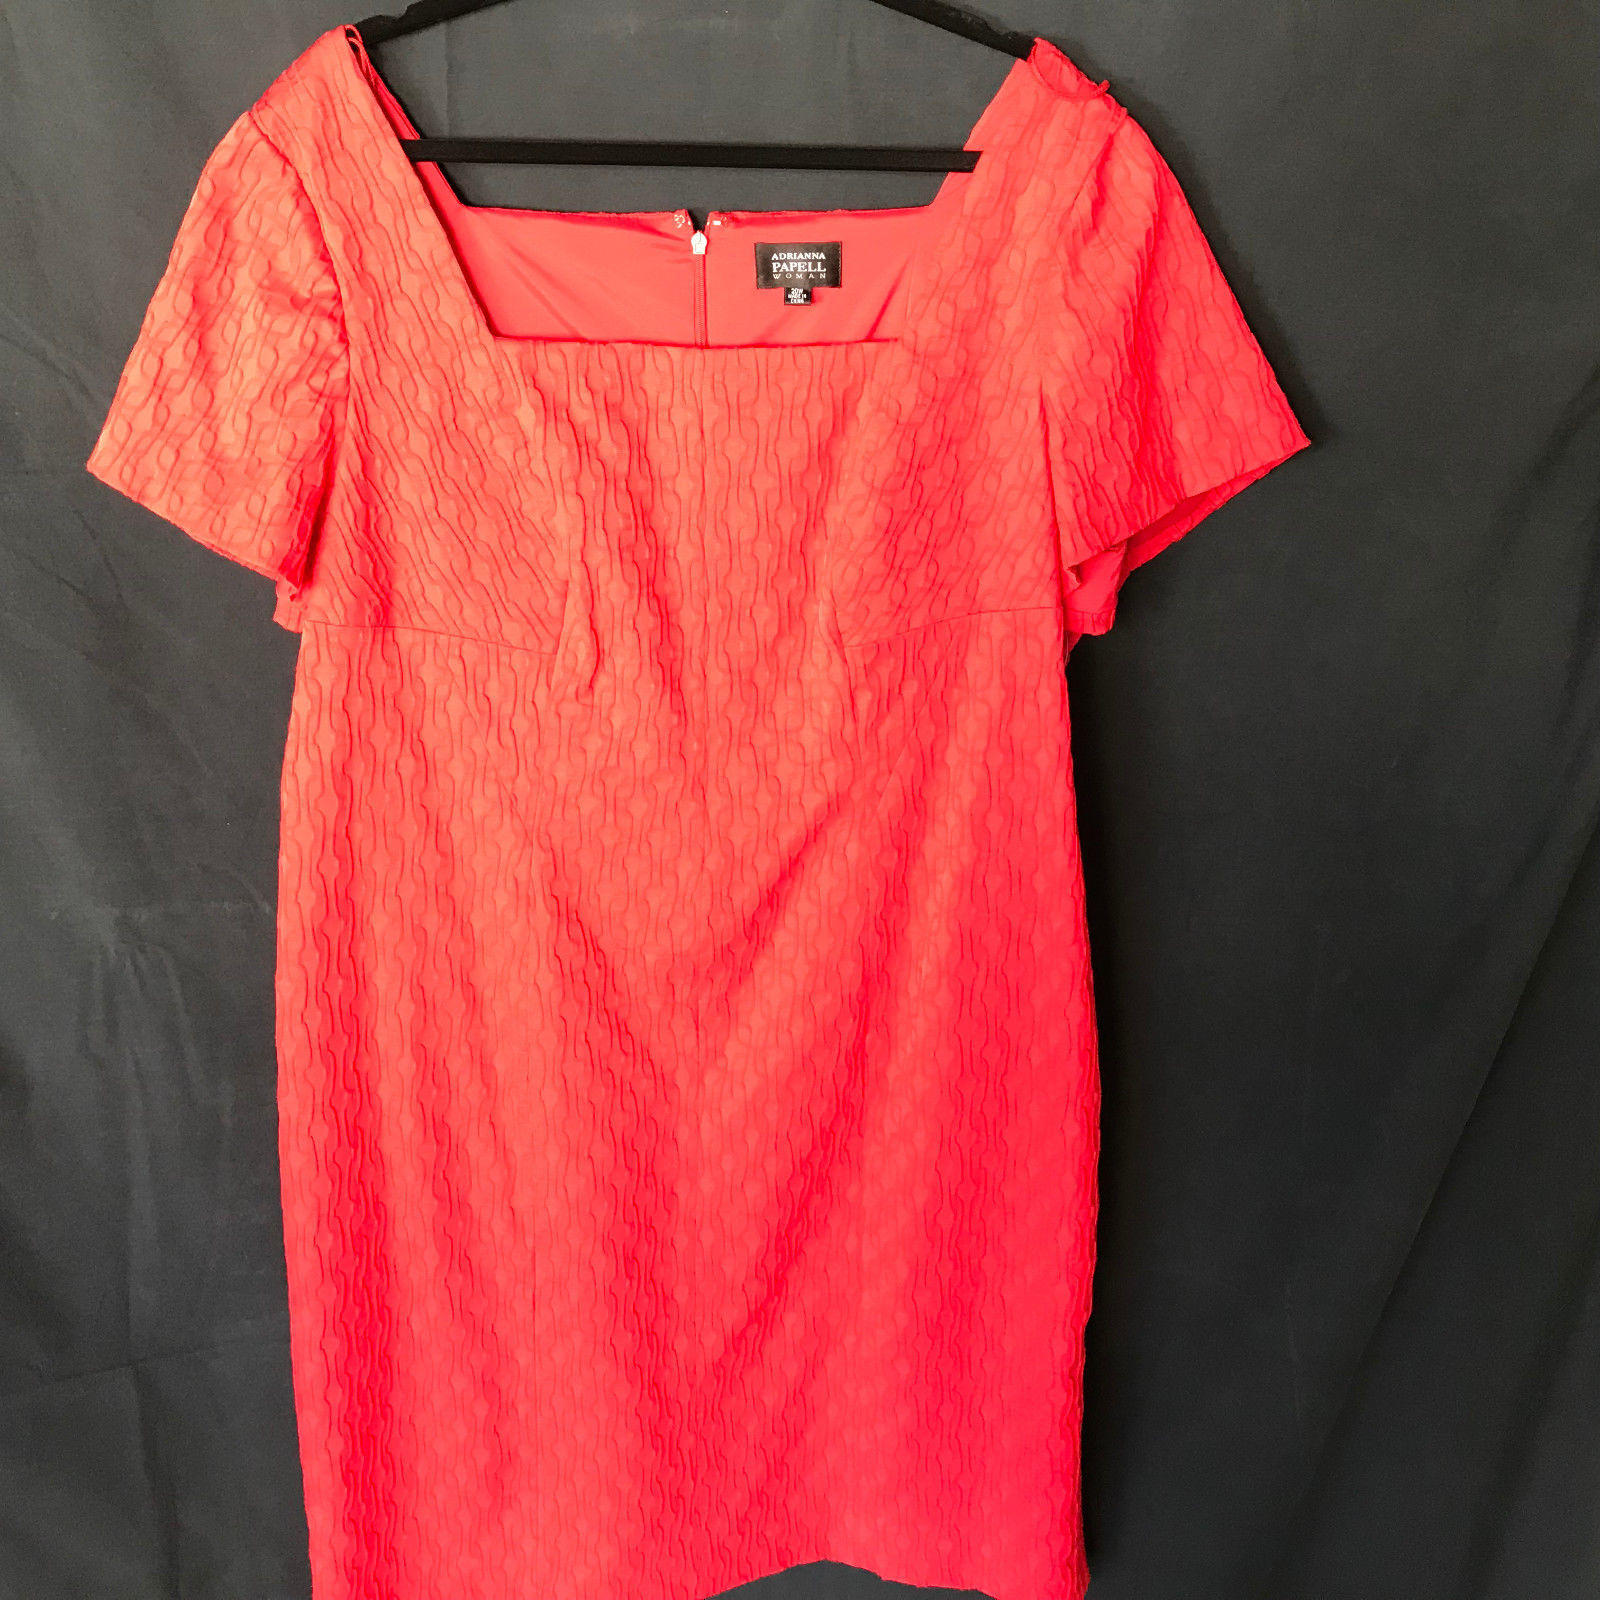 Adrianna Papell Woman Red Dress 20W Short Sleeve Squared Neck